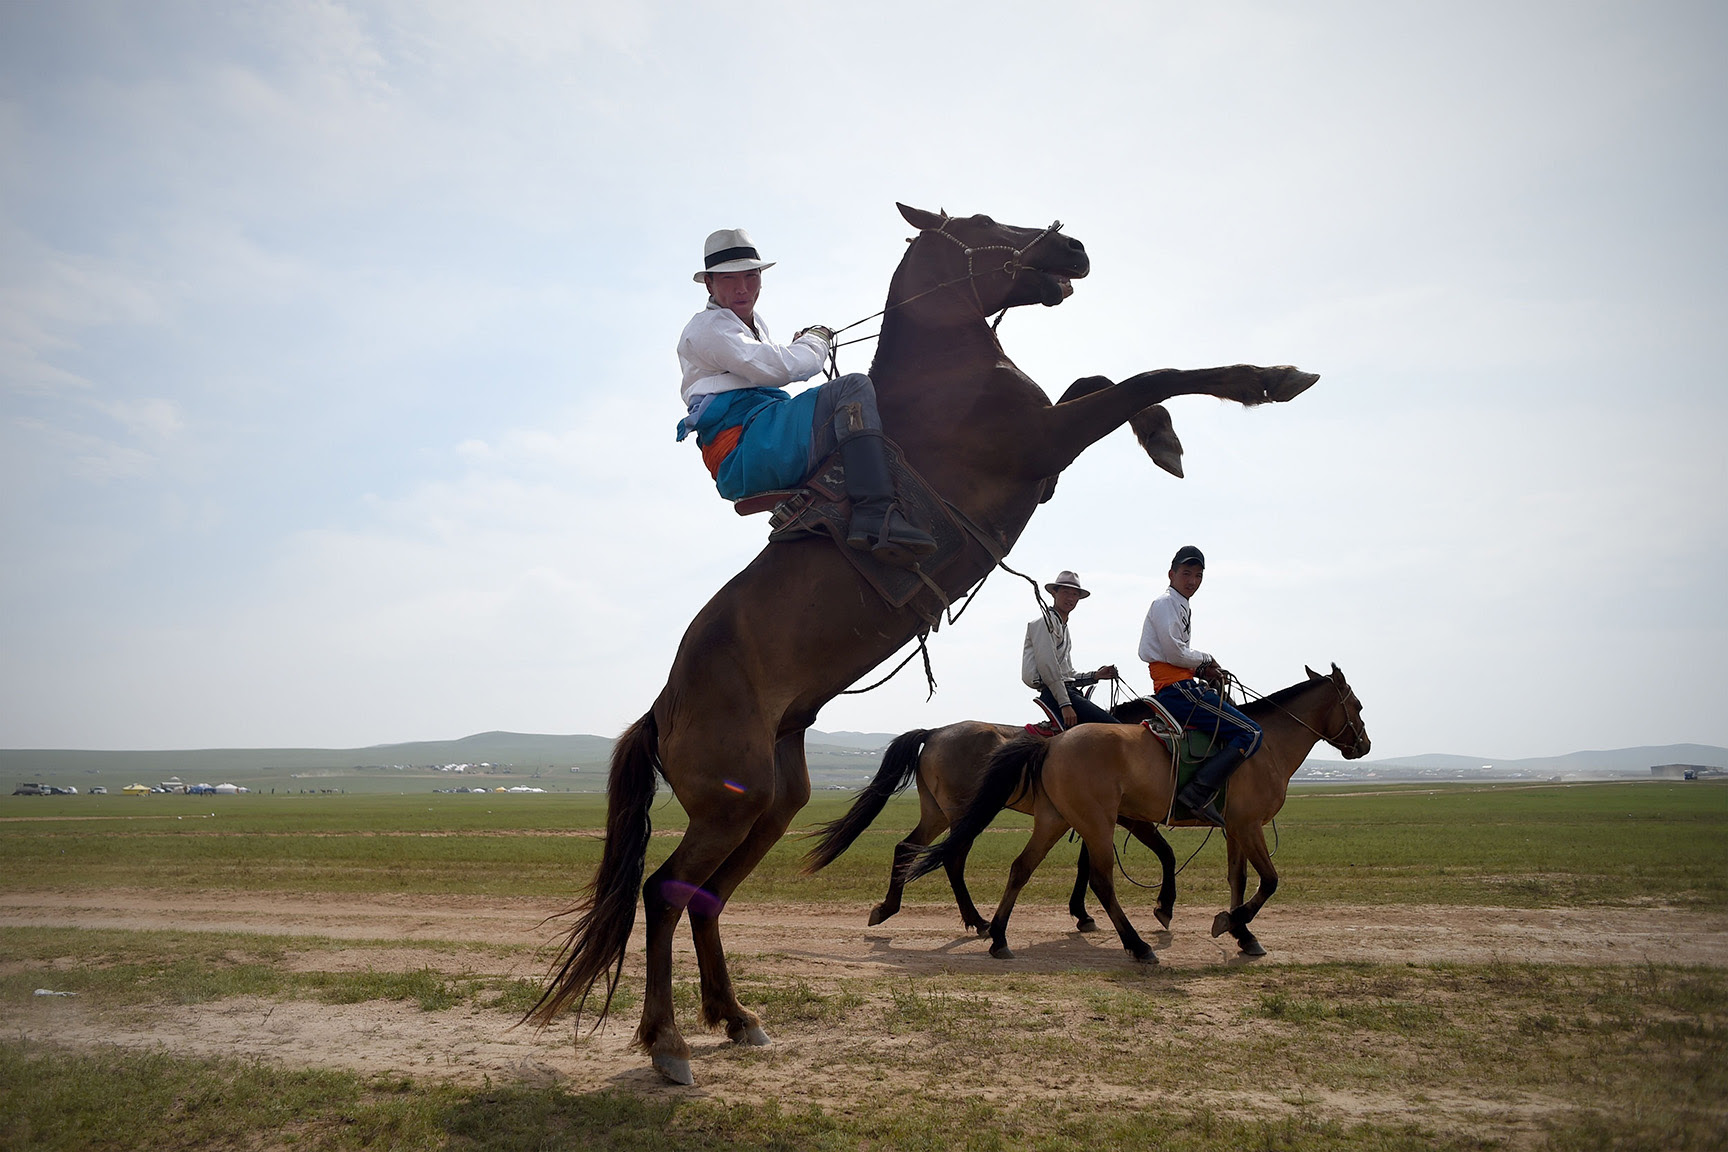 A Mongolian man controls his horse